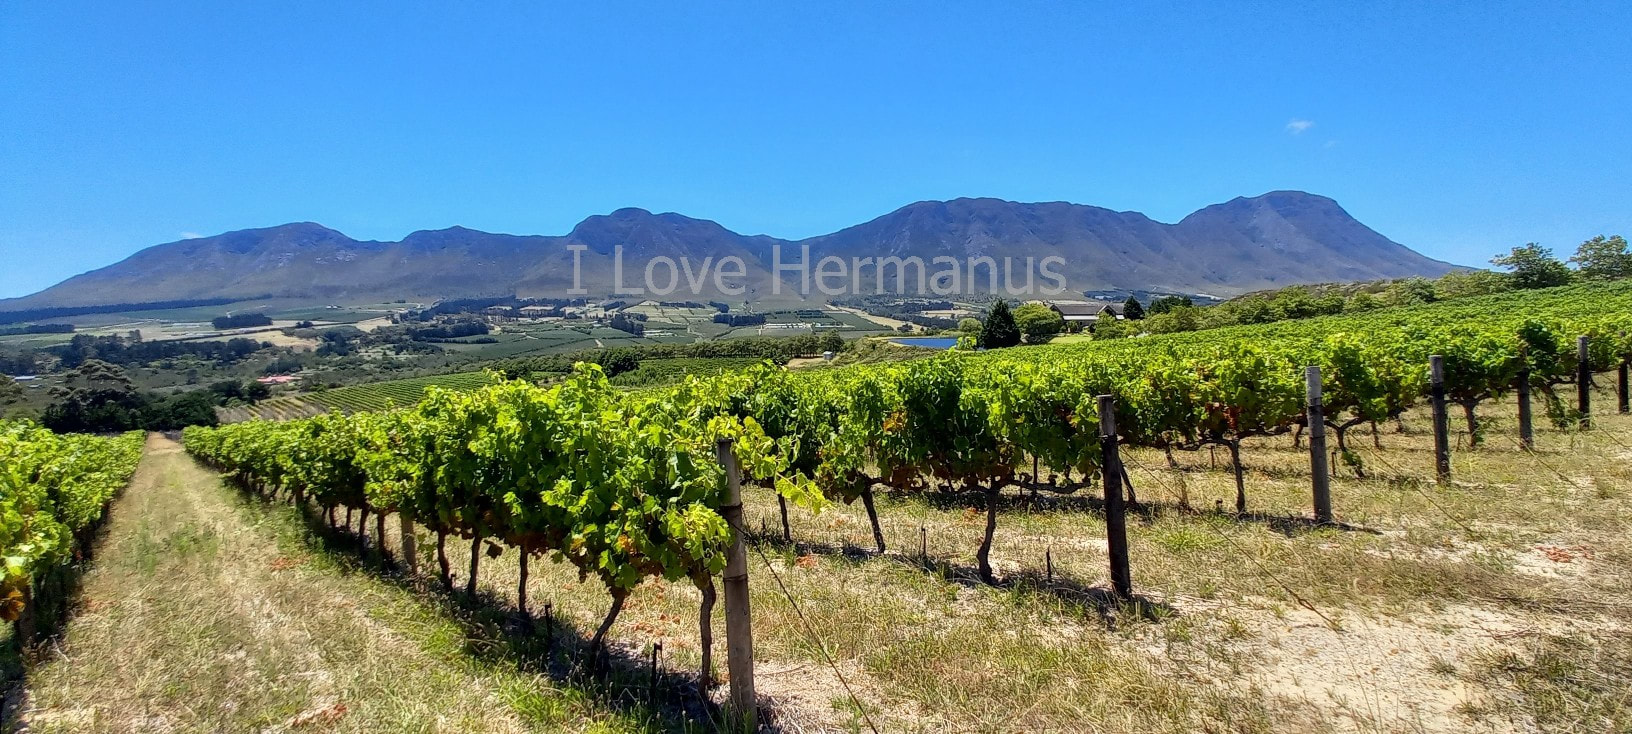 Hermanus award winning wine valley, Hemel-en-Aarde - producing over 120 great wines at over 22 independent wineries, near Cape Town, South Africa